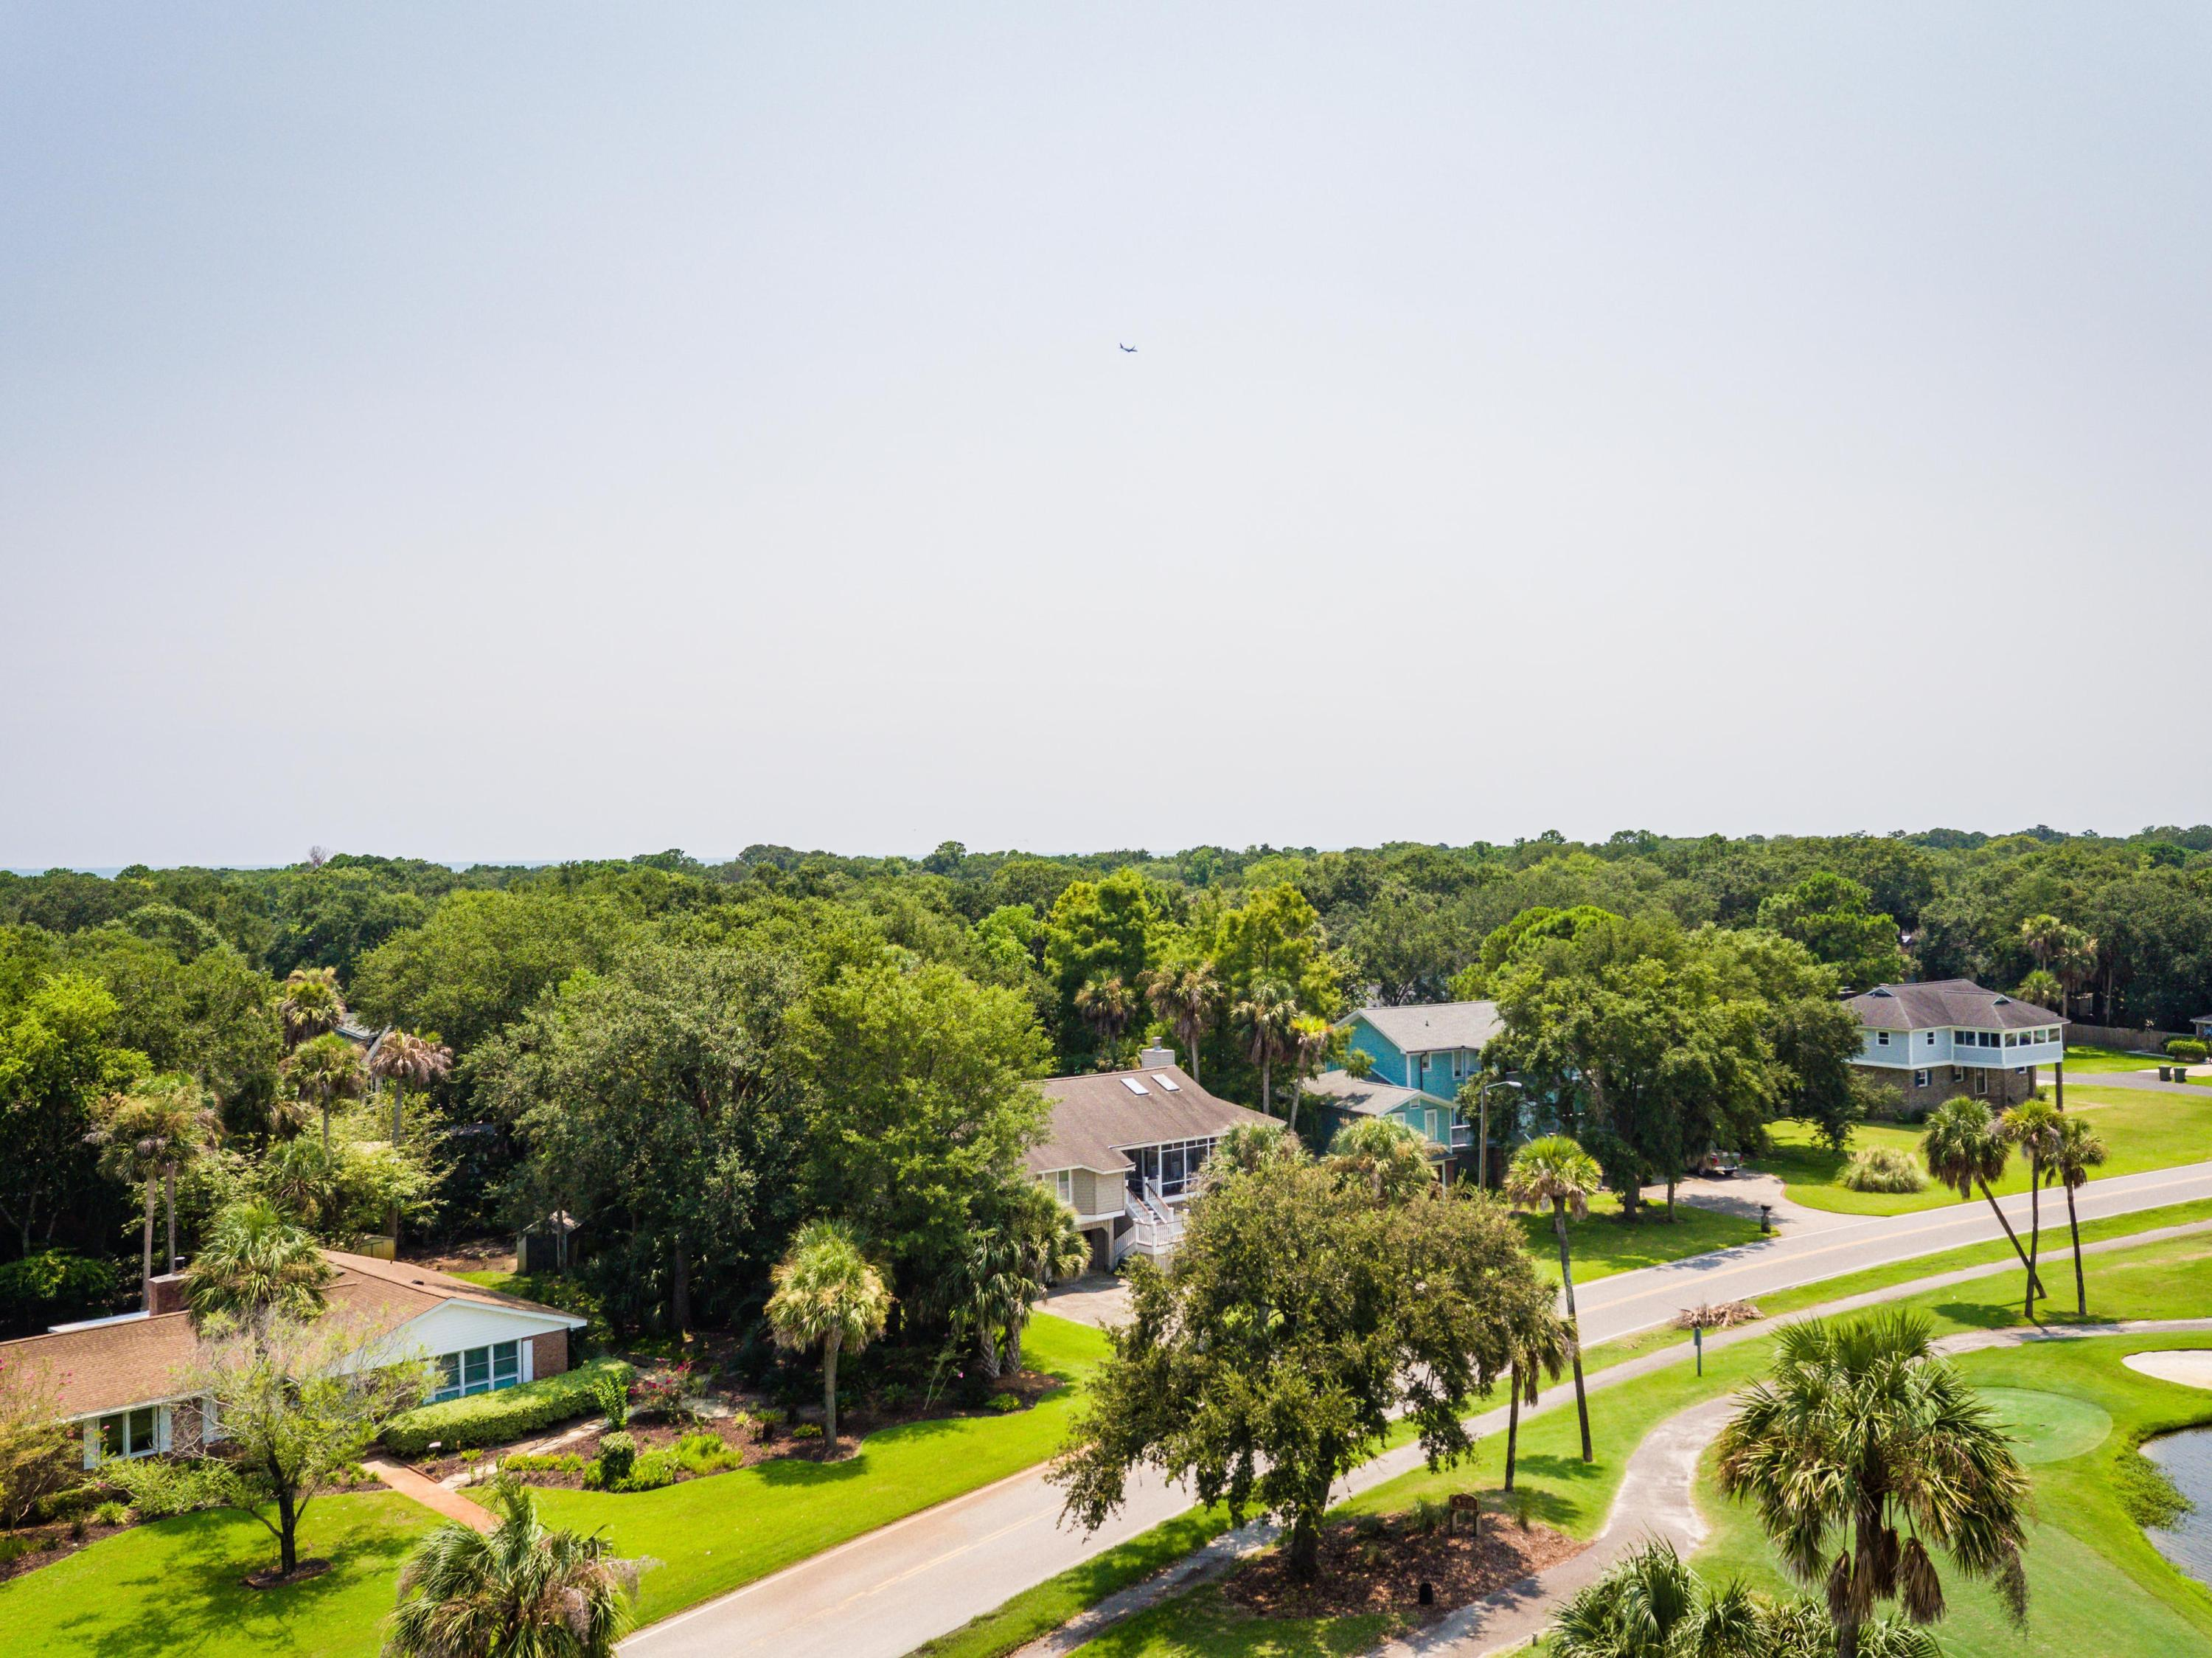 Isle of Palms Homes For Sale - 4001 Waterway, Isle of Palms, SC - 9